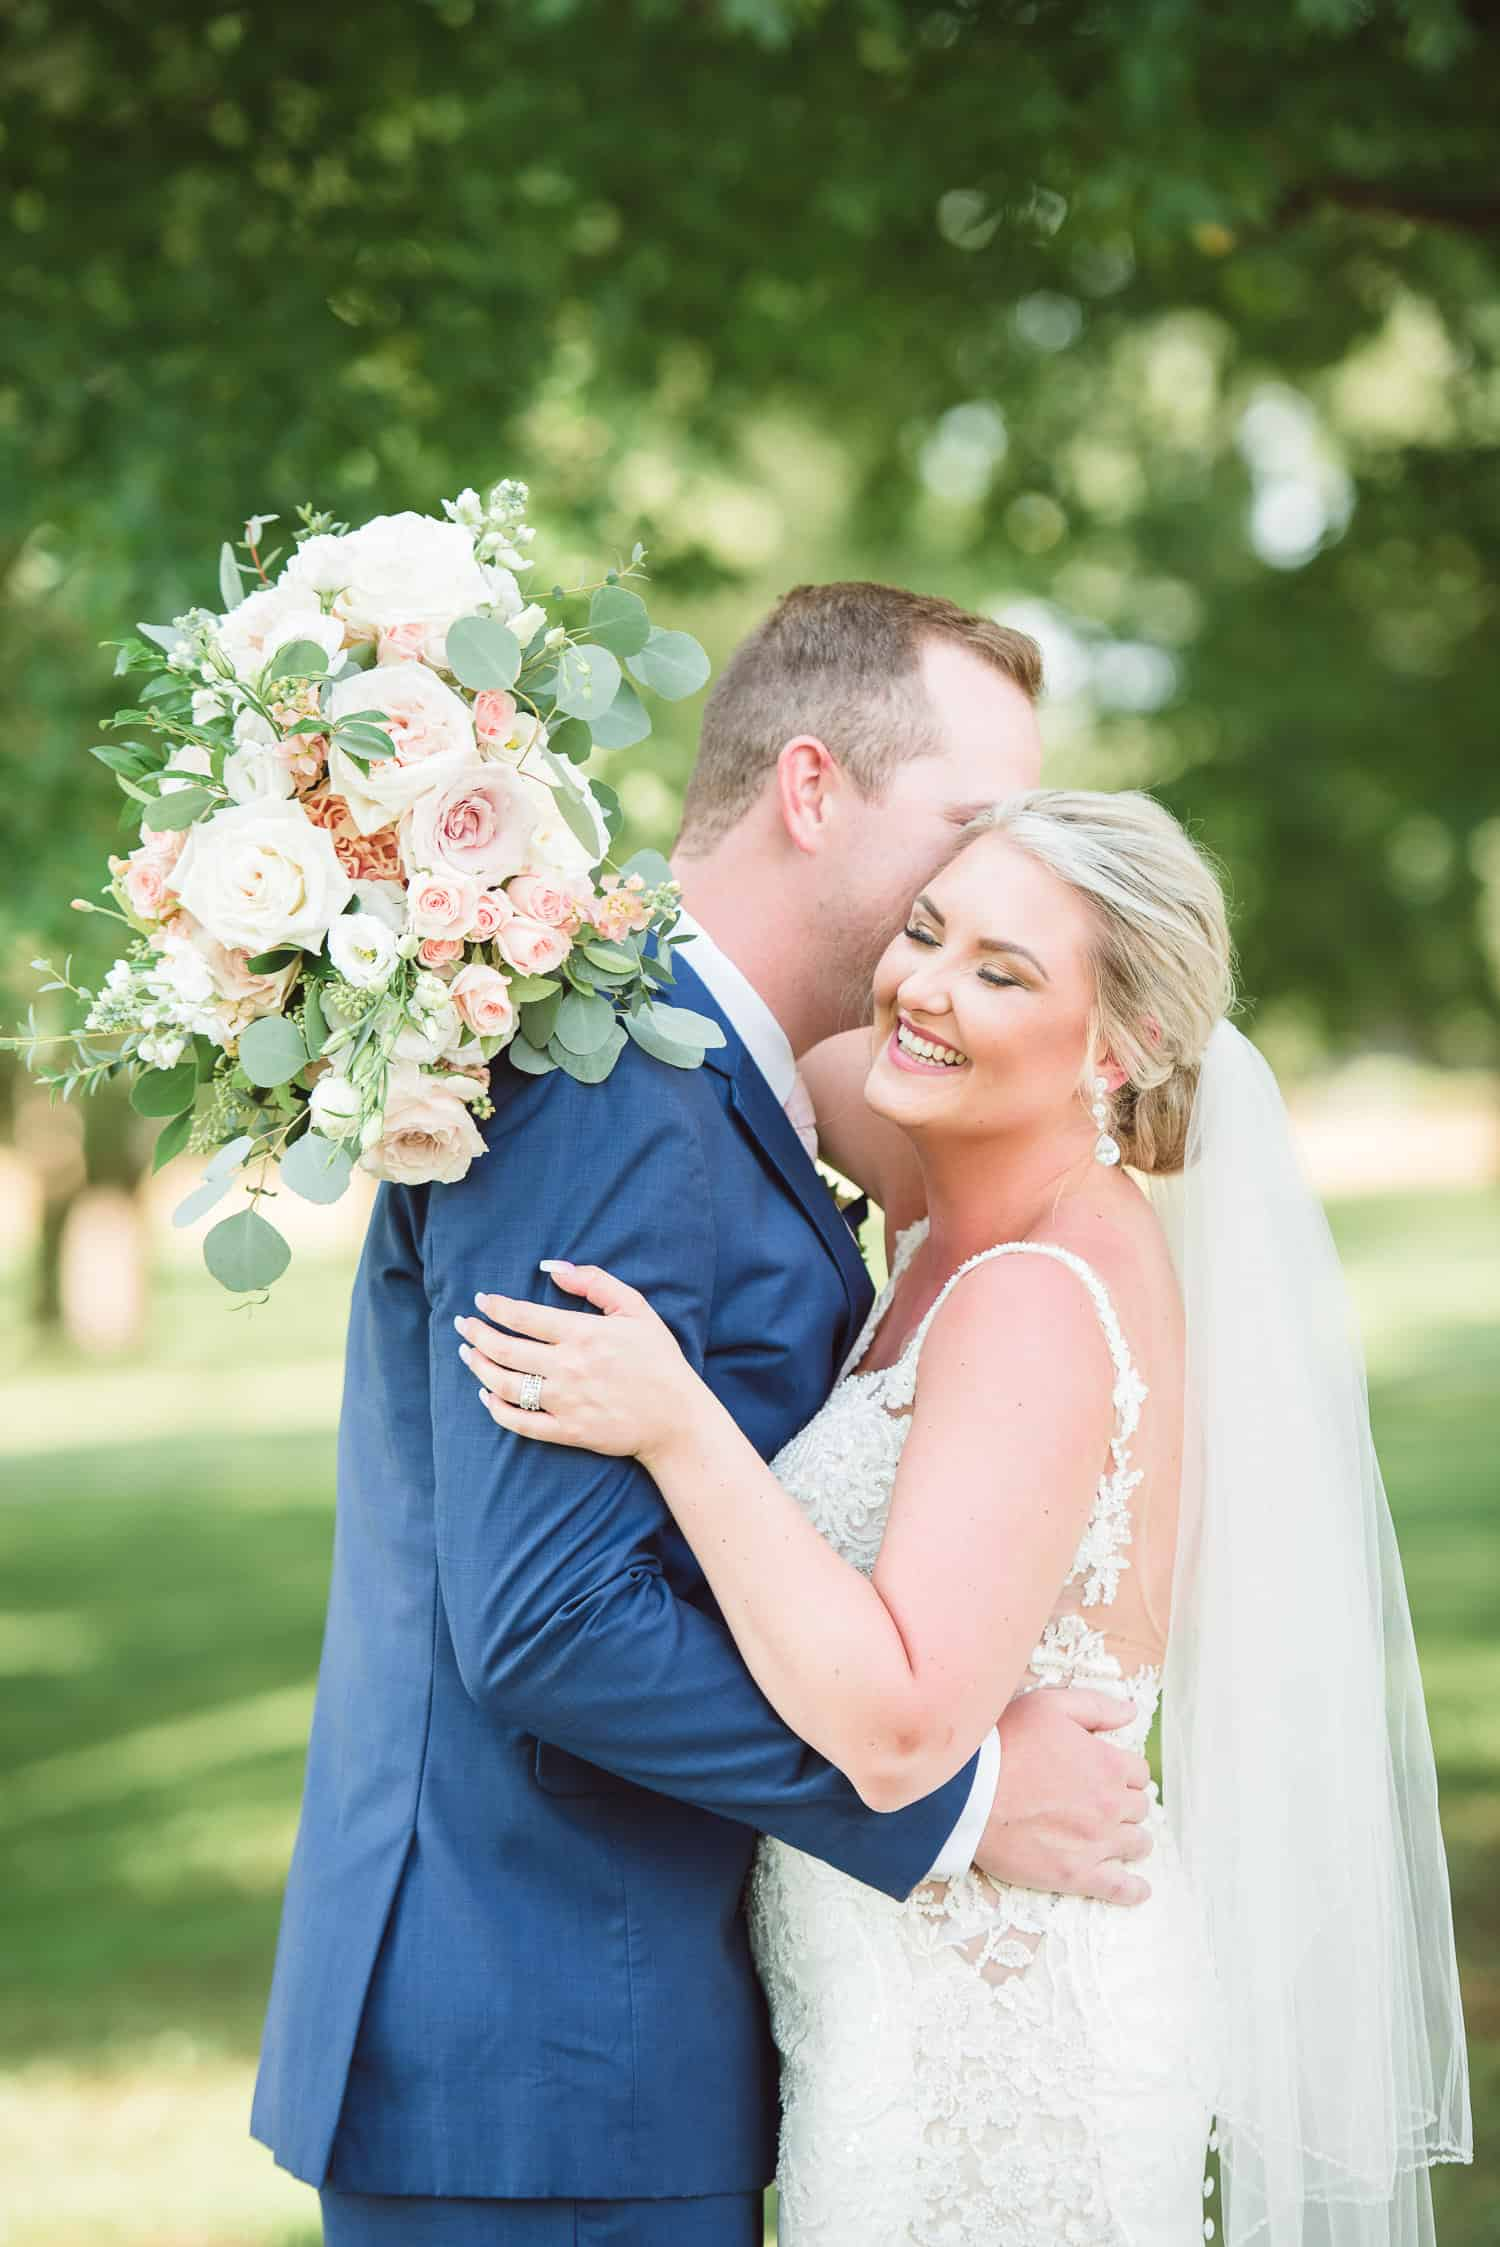 Heart and soul floral design wedding flowers